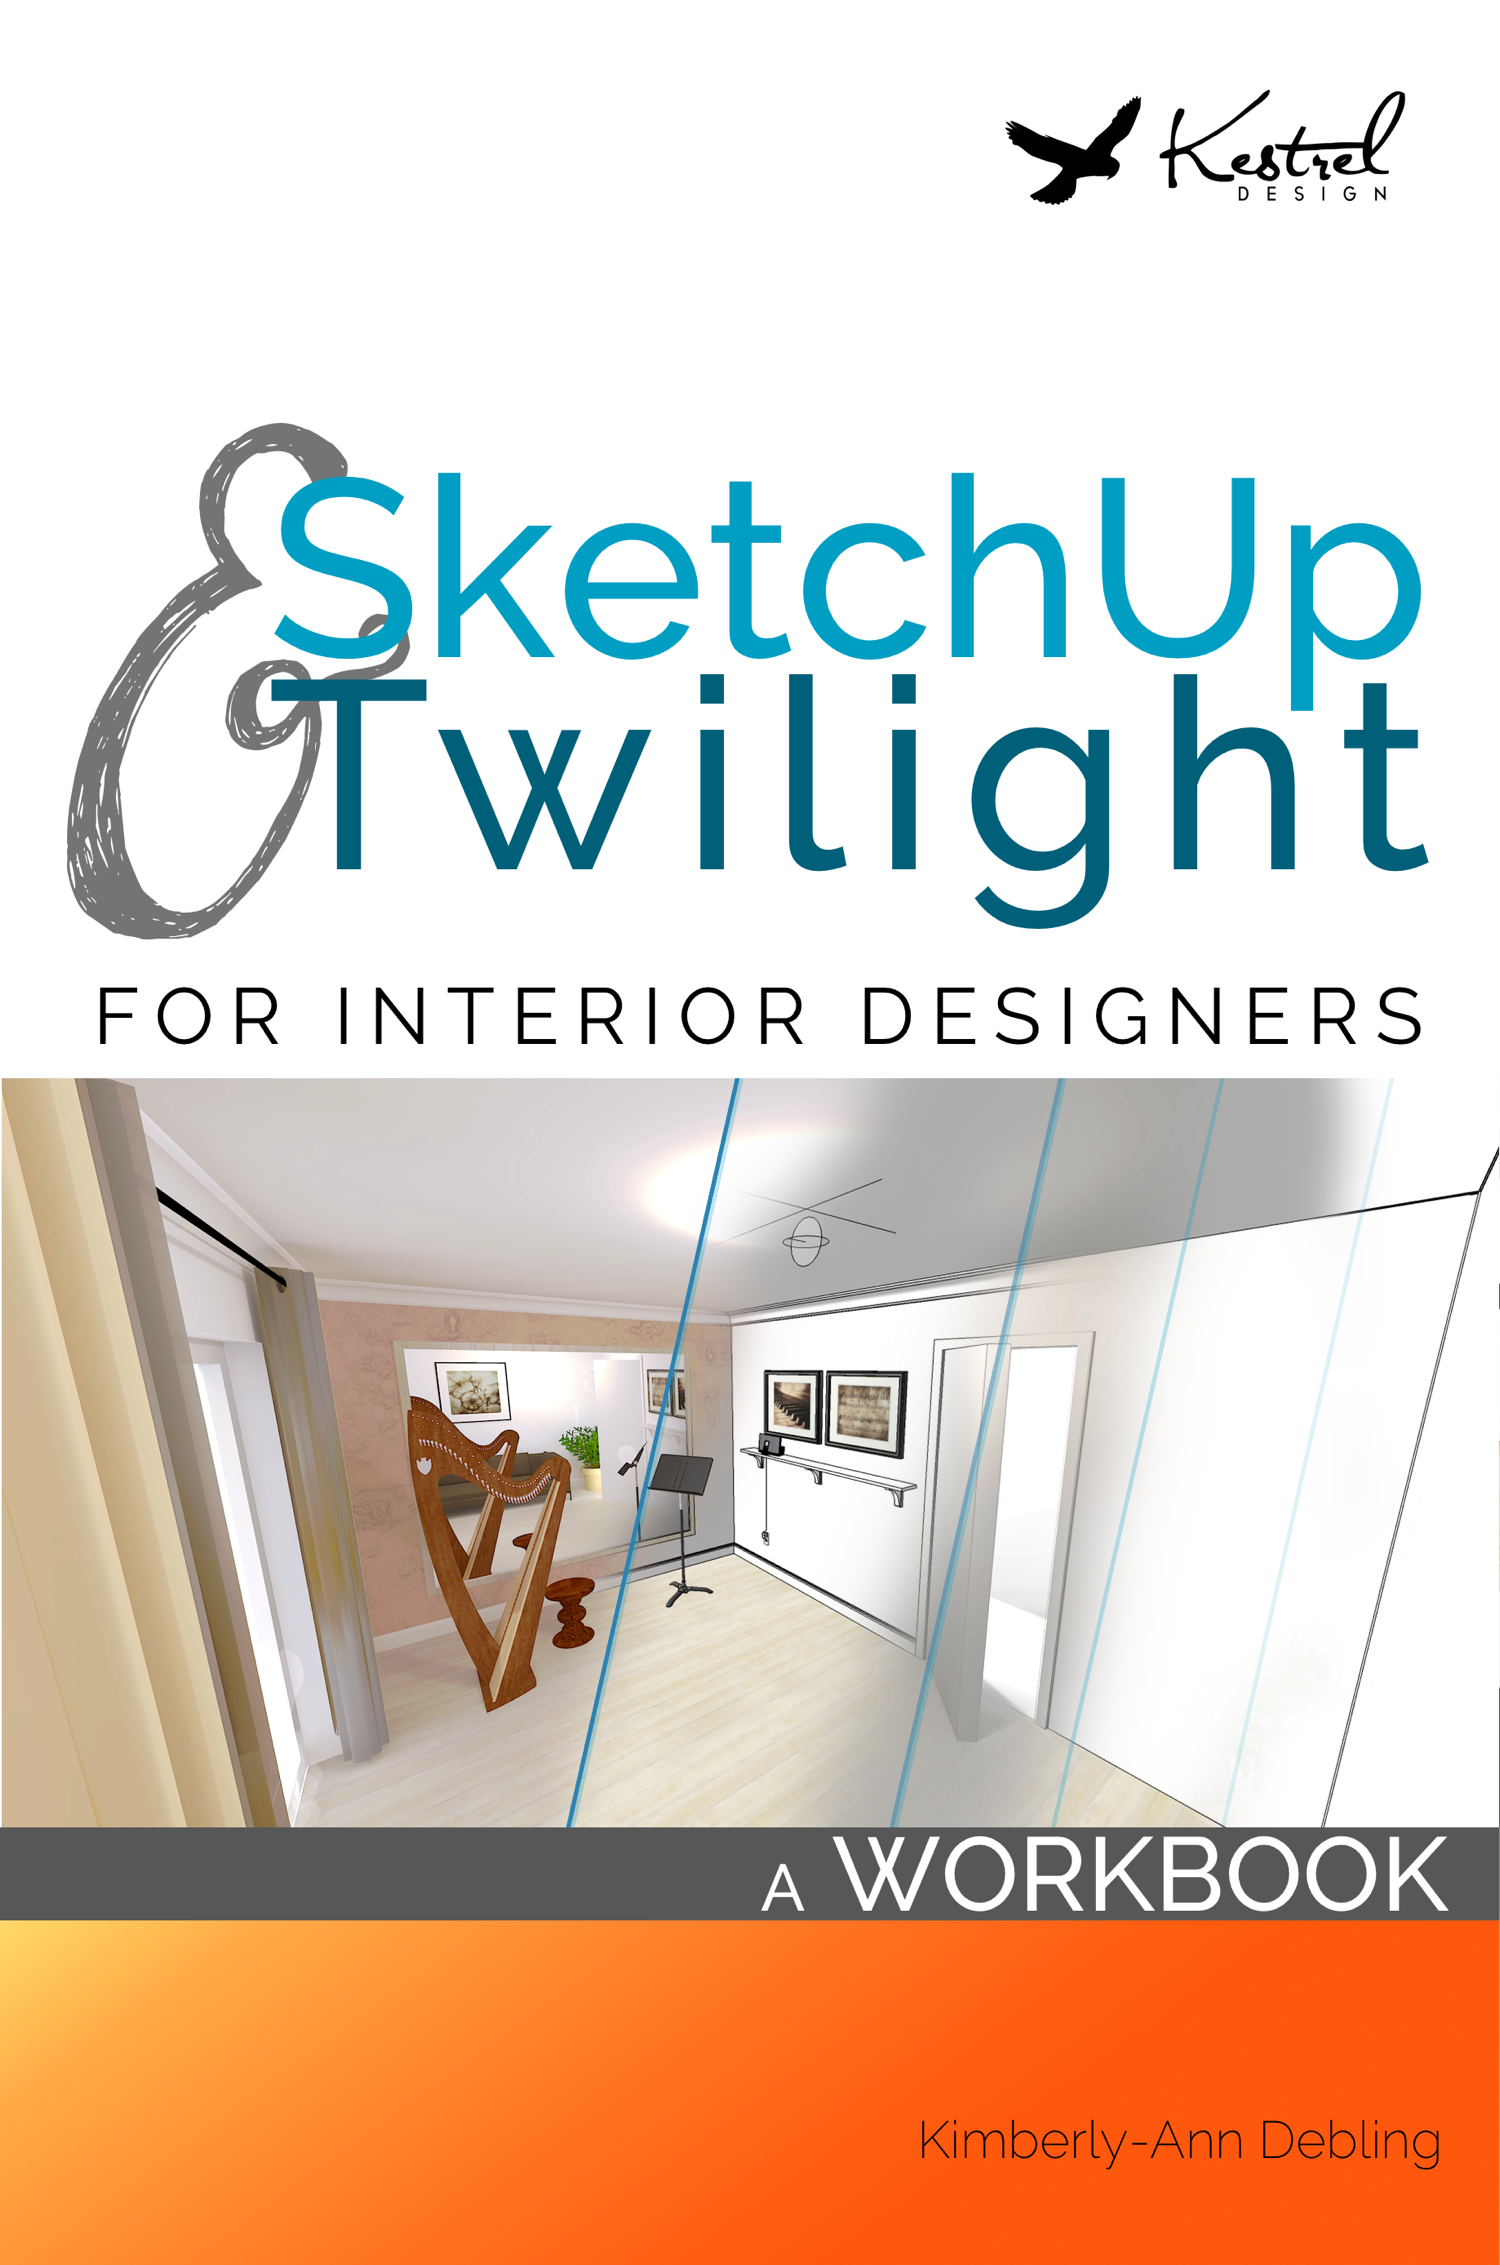 SketchUp & Twilight for Interior Designers: A Workbook